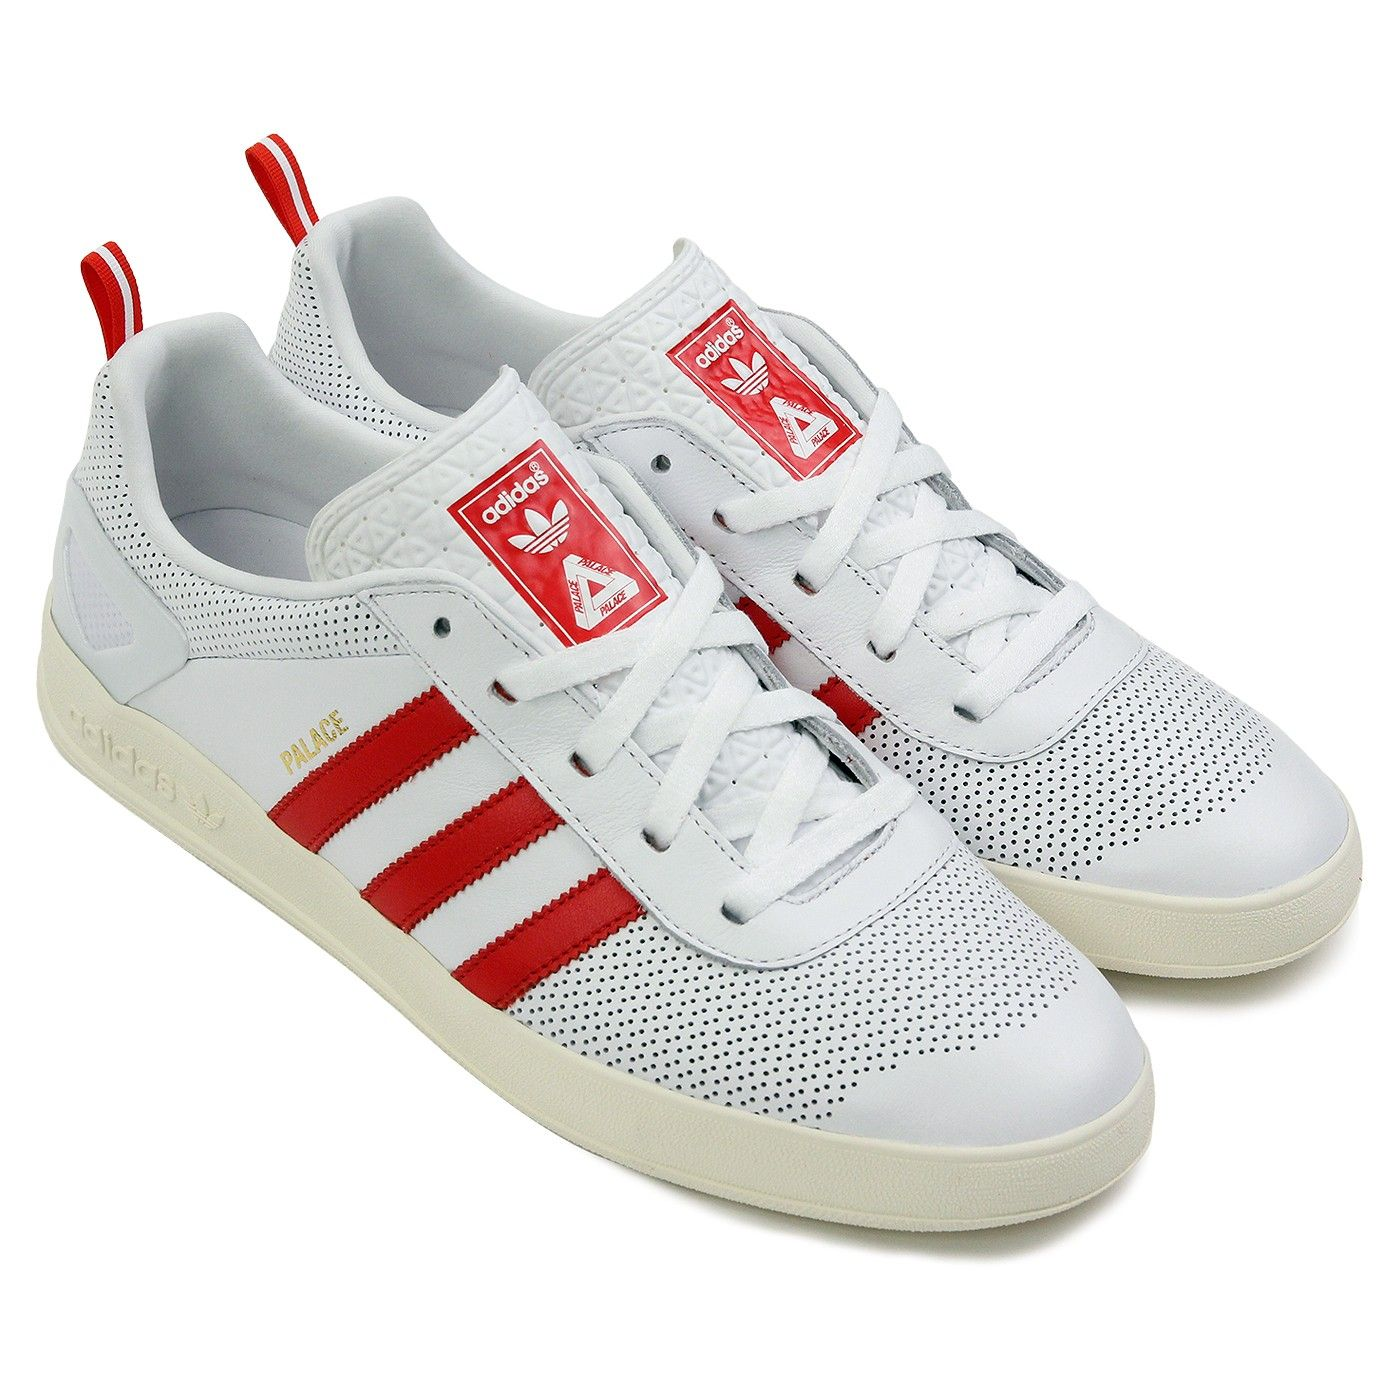 d4f52c0e7c9 Palace x Adidas Palace Pro Shoes in FTW White   Red   Gold Metallic ...